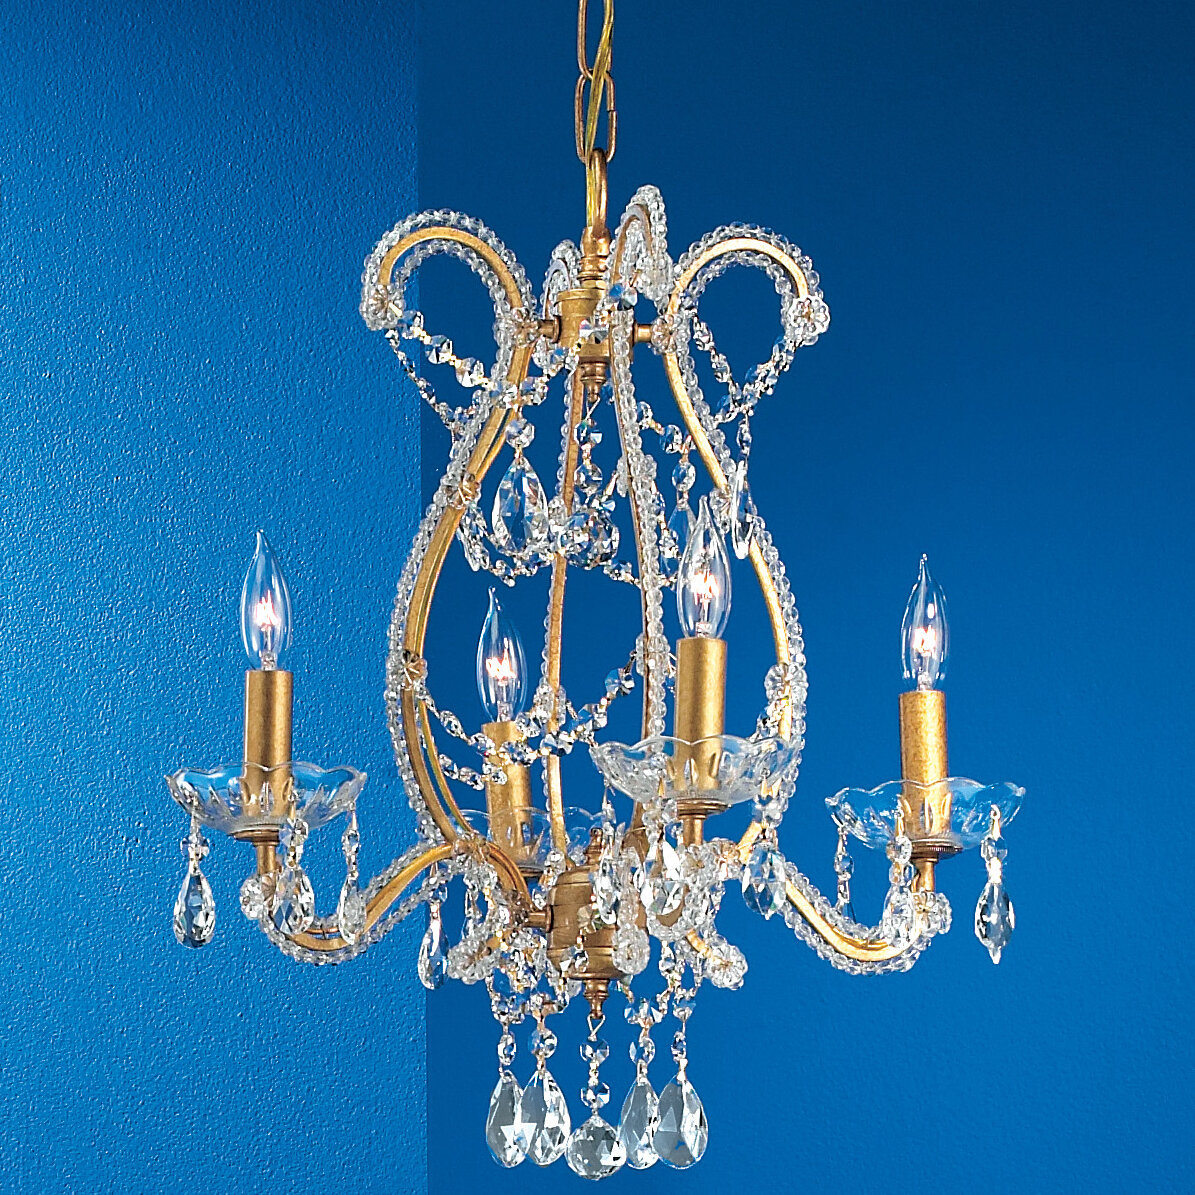 Classic Lighting Aurora 4 Light Candle Style Classic Traditional Chandelier Wayfair